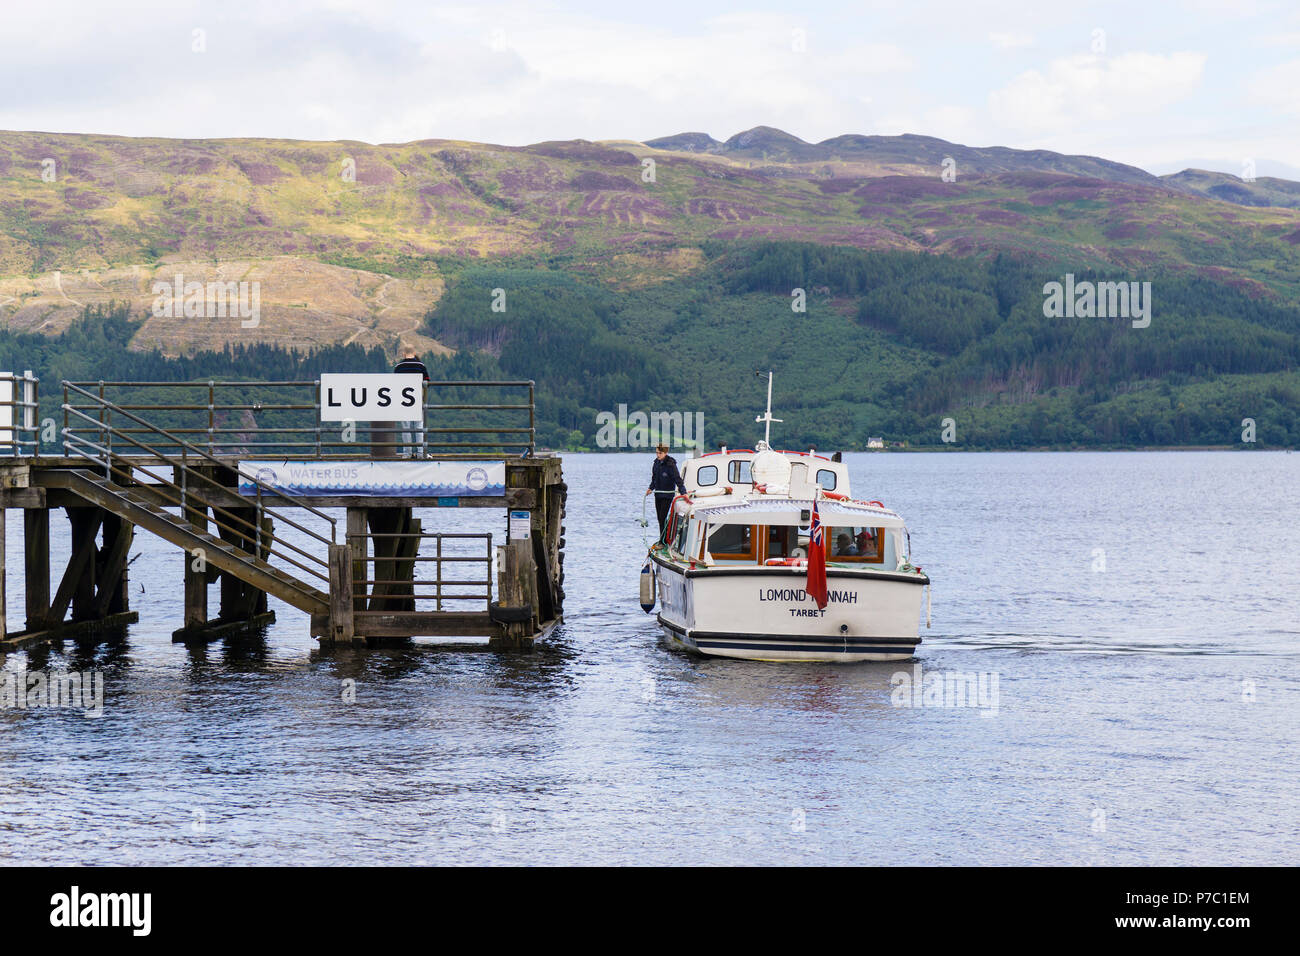 Tourist boat at the jetty at Luss on Loch Lomond. Luss has been named as the most beautiful village in Scotland. - Stock Image